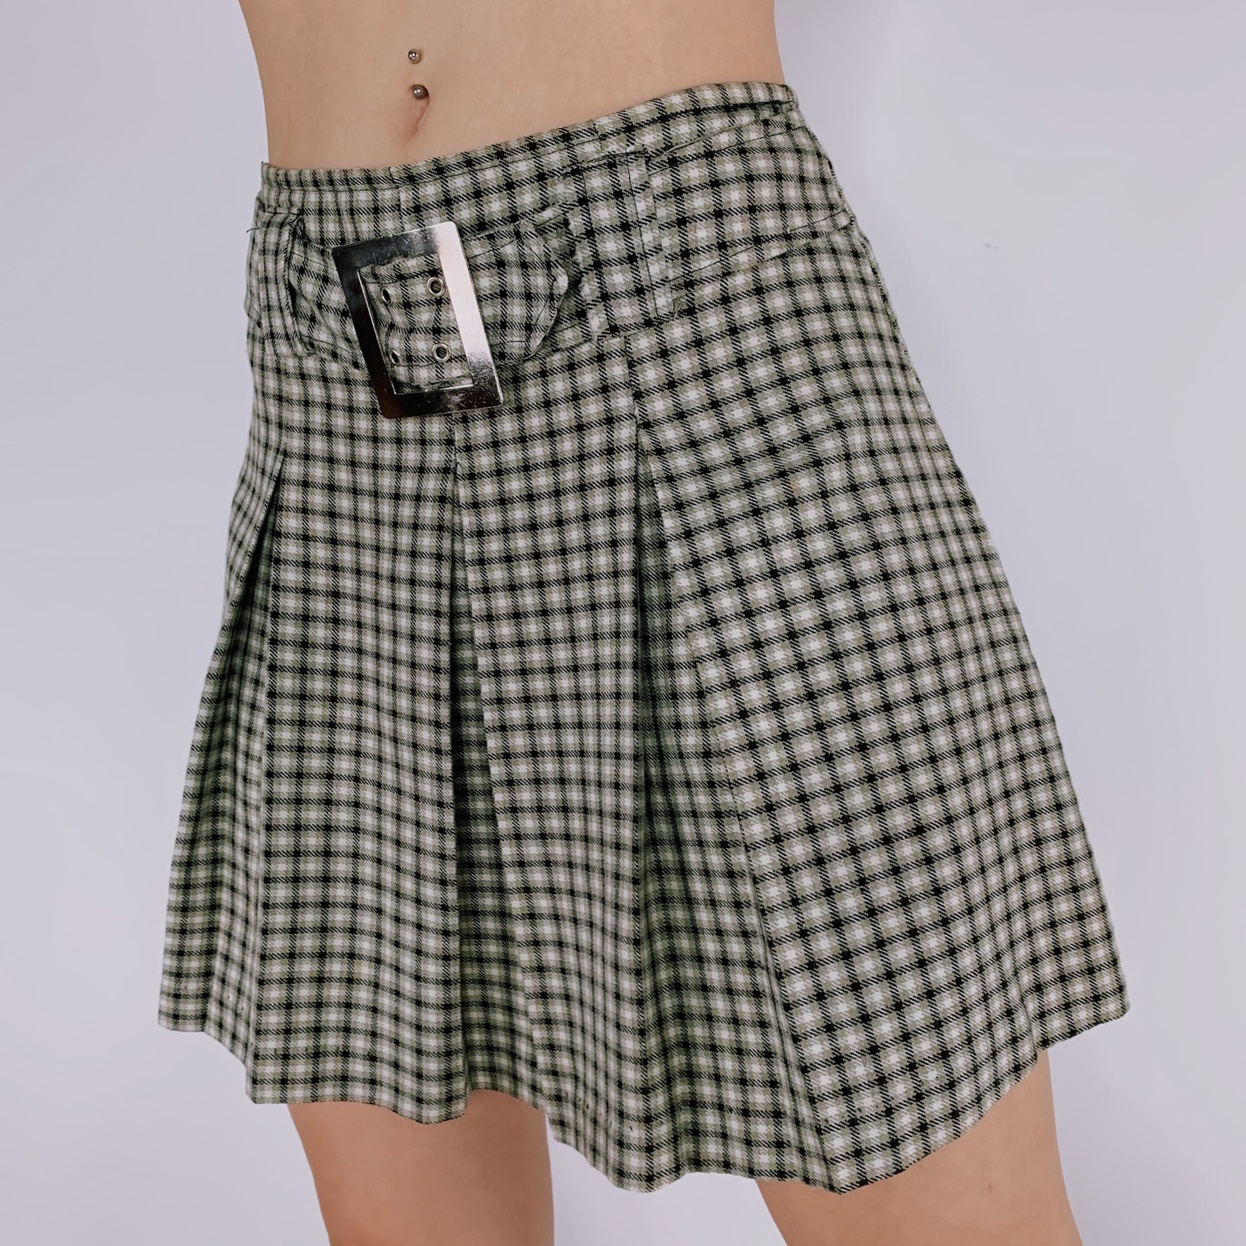 Product Image 1 - 1990s Plaid Mini Skirt by